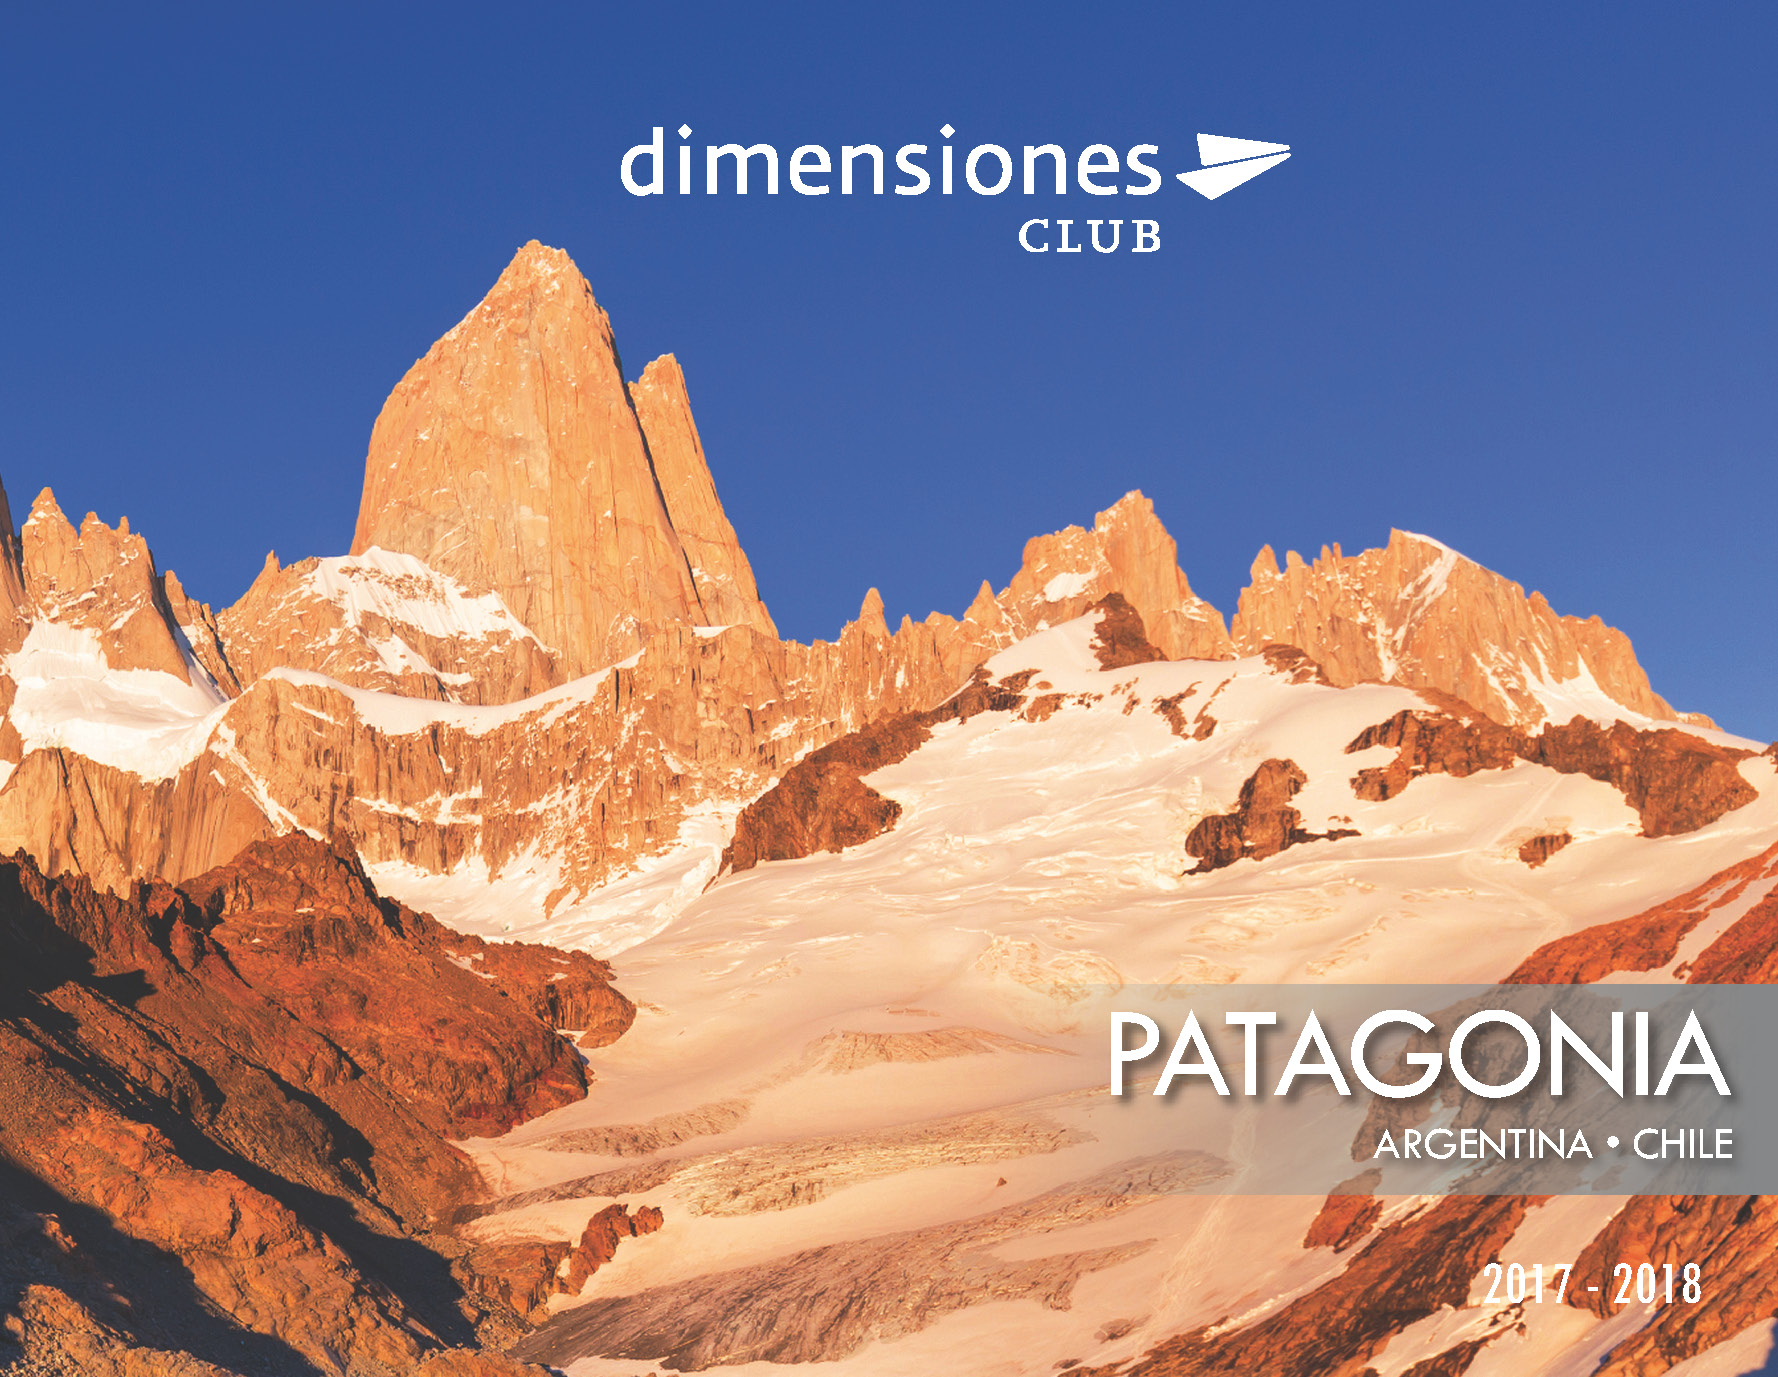 Catalogo Dimensiones Club Argentina y Chile 2017-2018